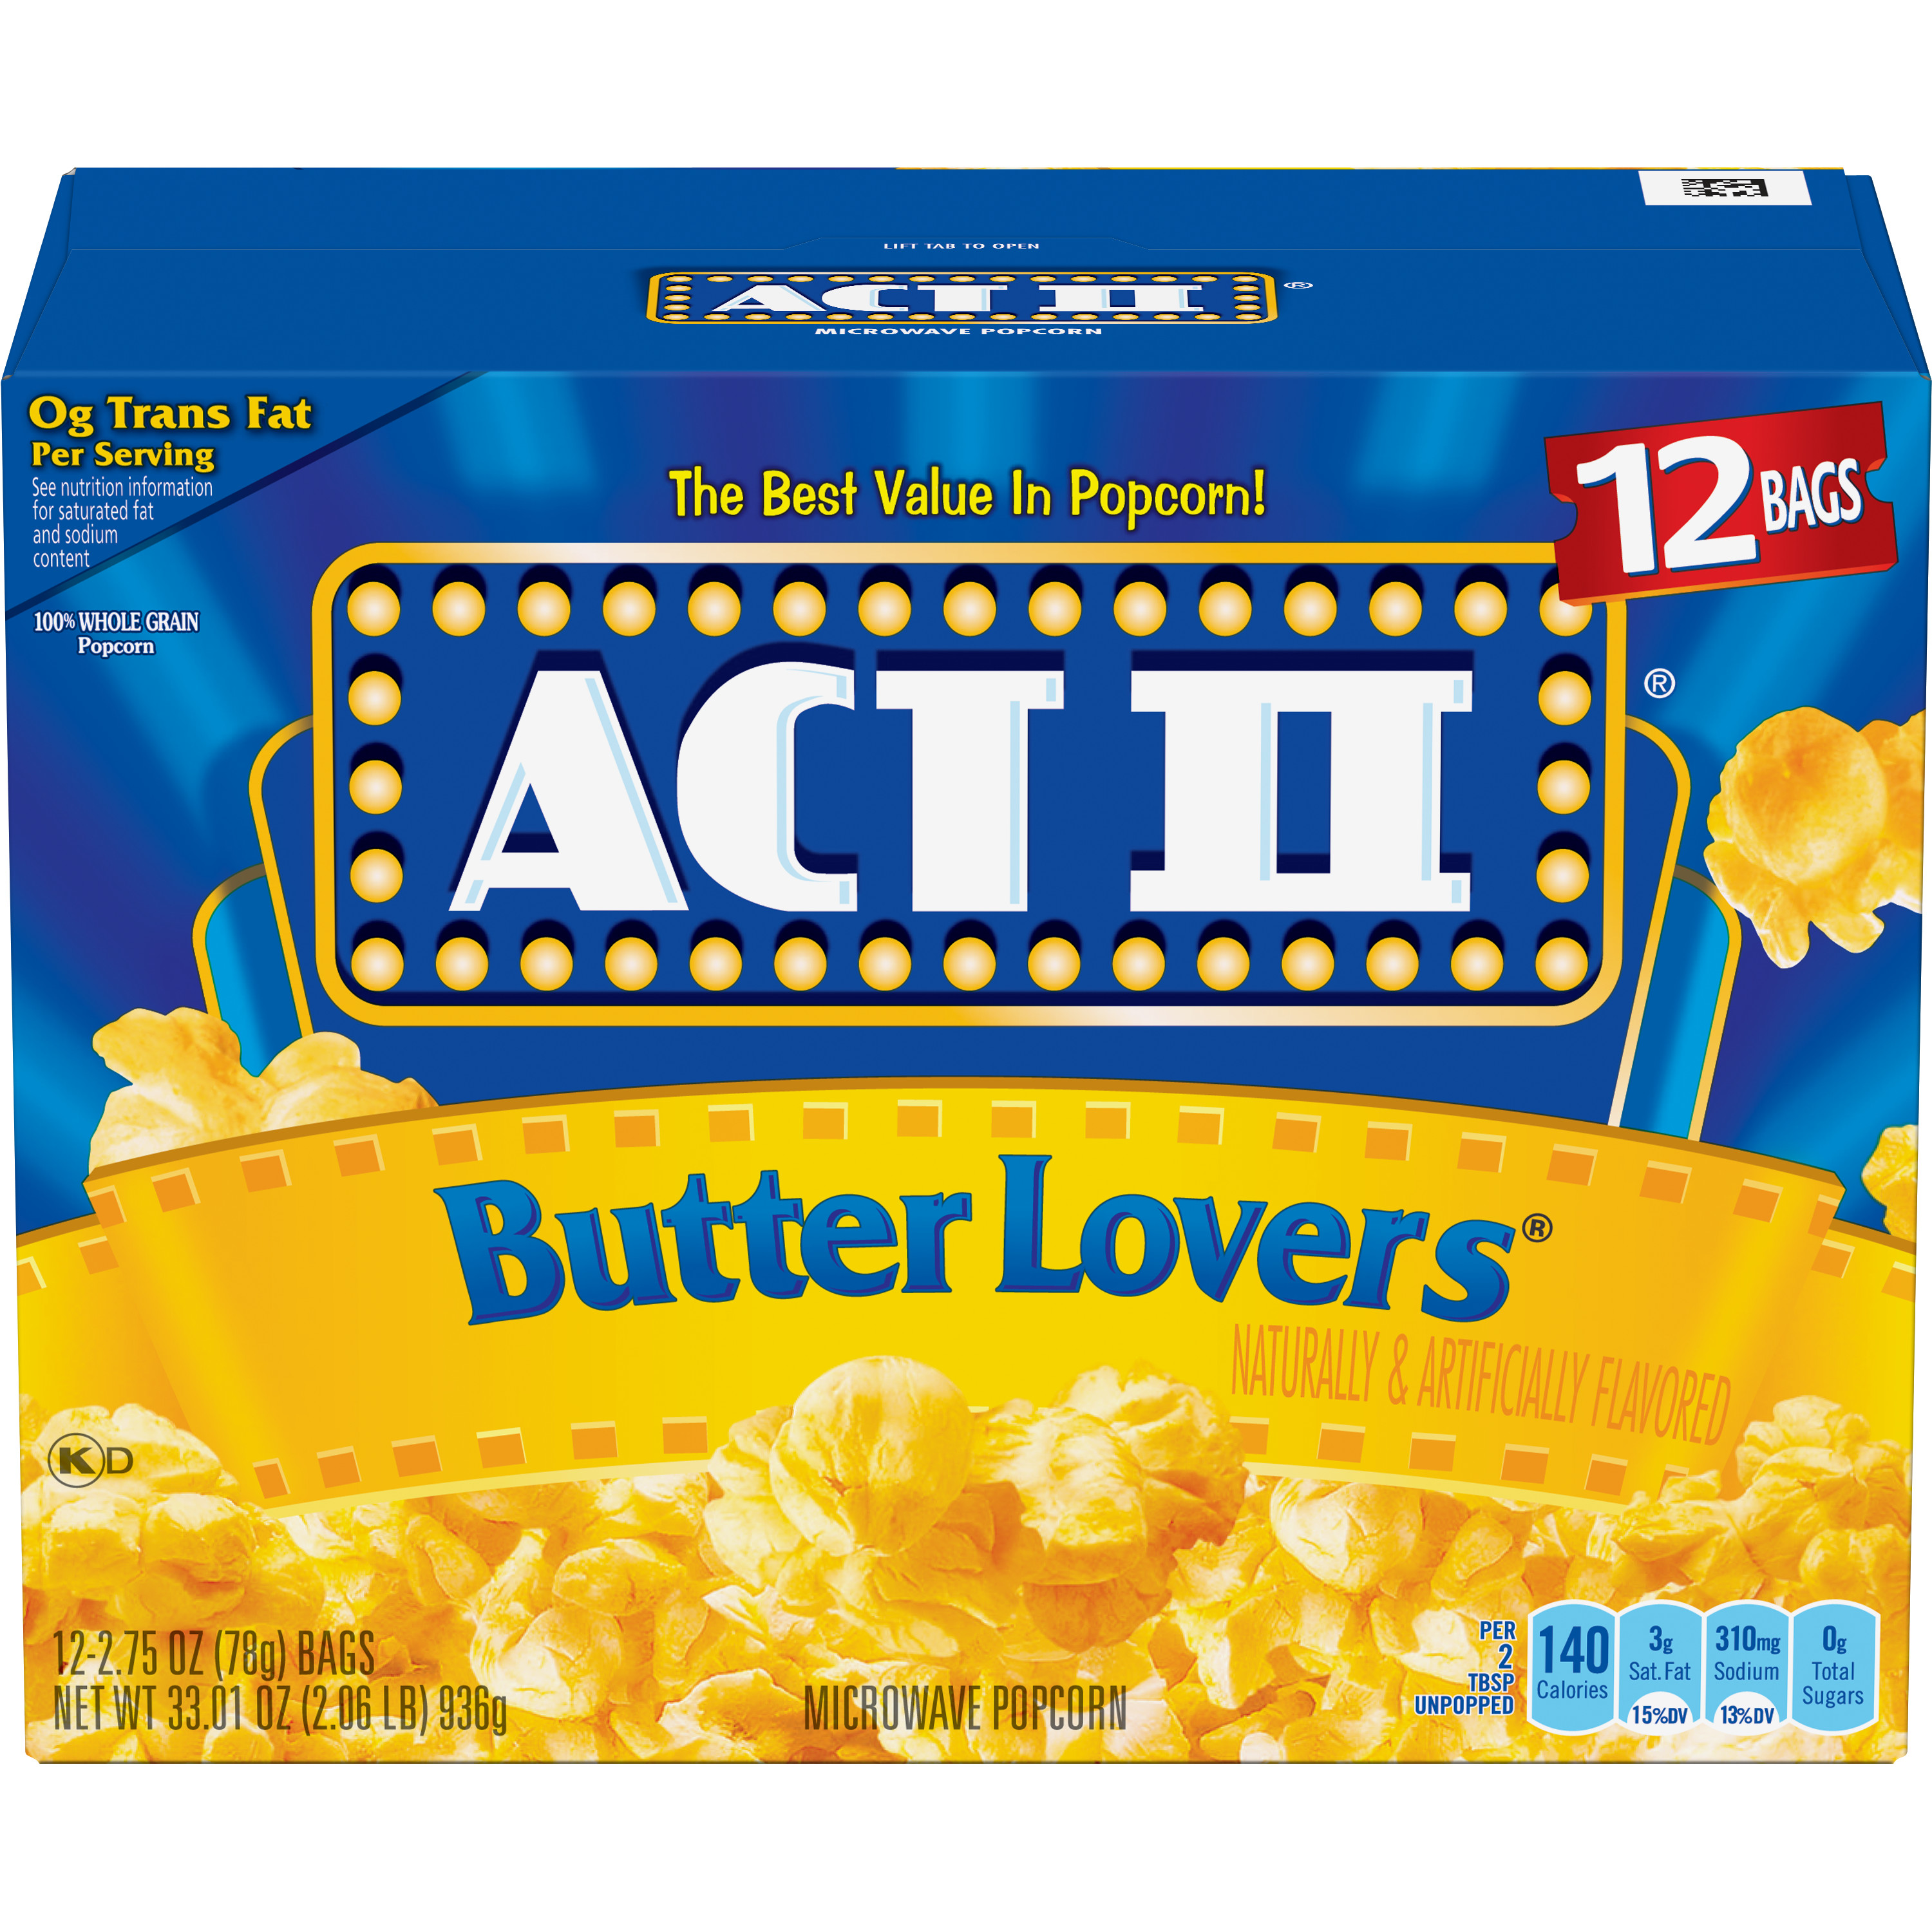 (3 Pack) ACT II Microwave Popcorn, Butter Lovers, 2.75 Oz, 12 Ct